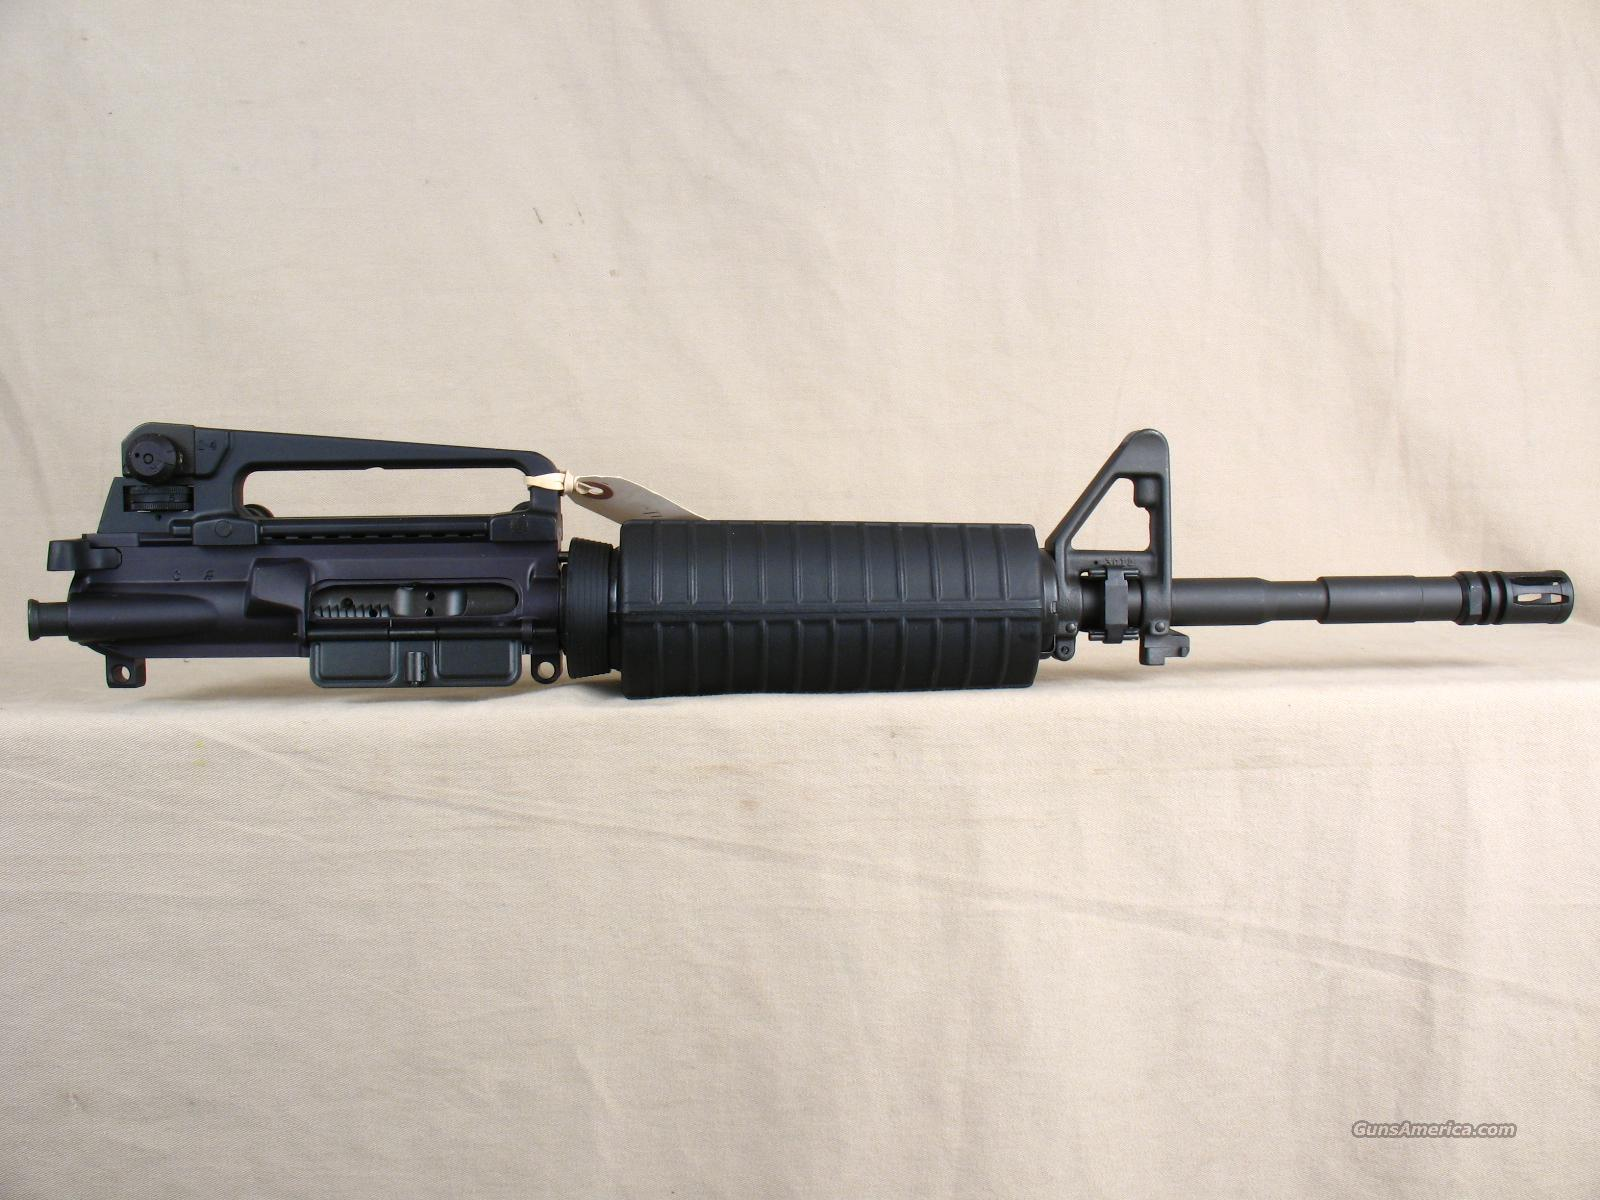 "Colt M4 A3 6921/O920 14.5"" new dark grey AR upper  Guns > Rifles > Colt Rifles - Non-AR15 Modern Rifles"